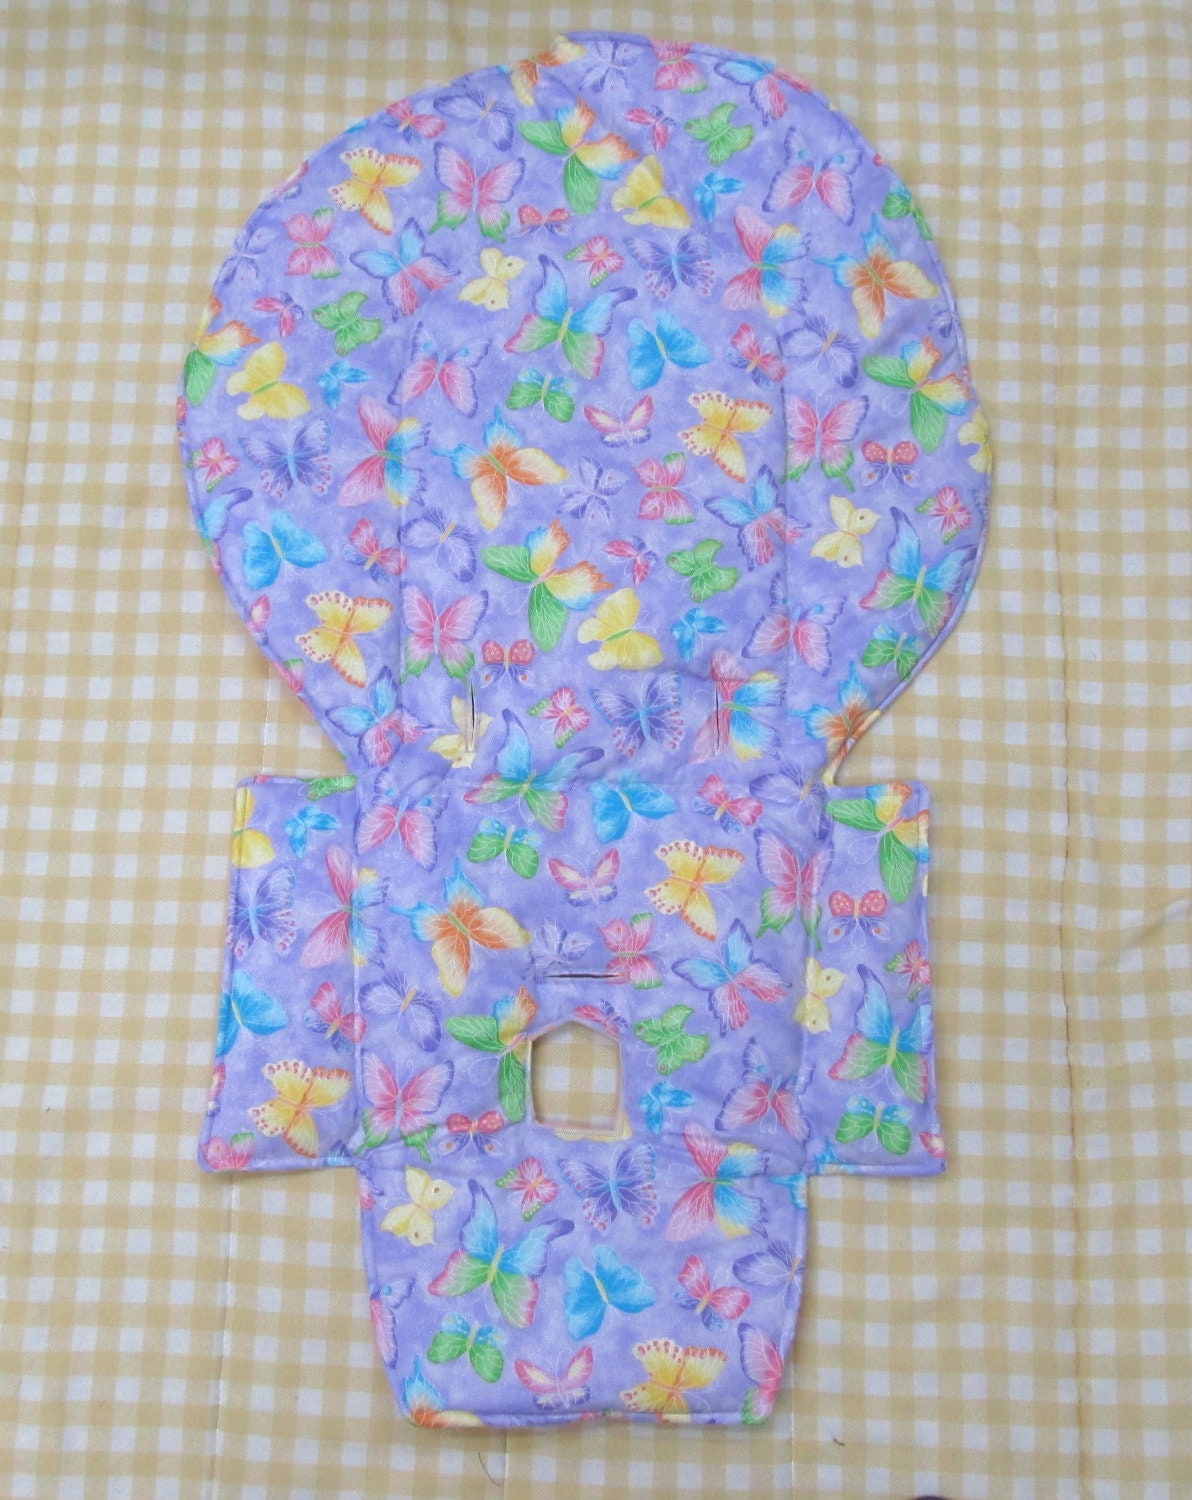 Evenflo Replacement High Chair Pad Coverpurple By Sewingsilly